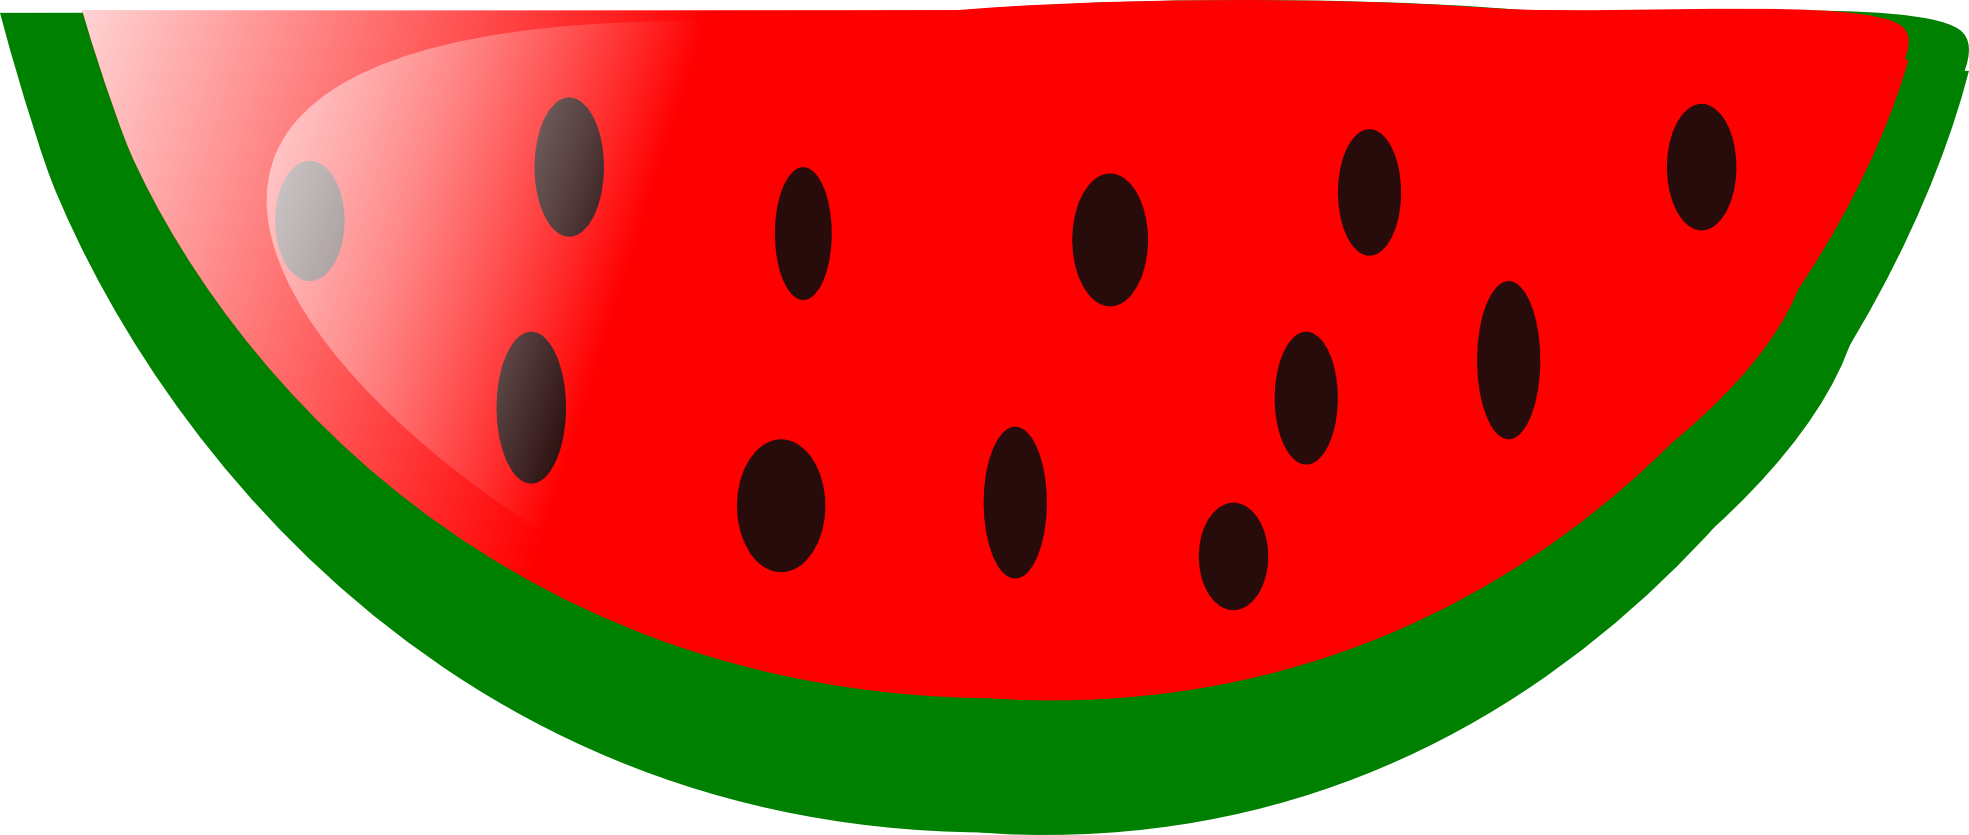 Vector fruits sliced. Watermelon slice clipart free